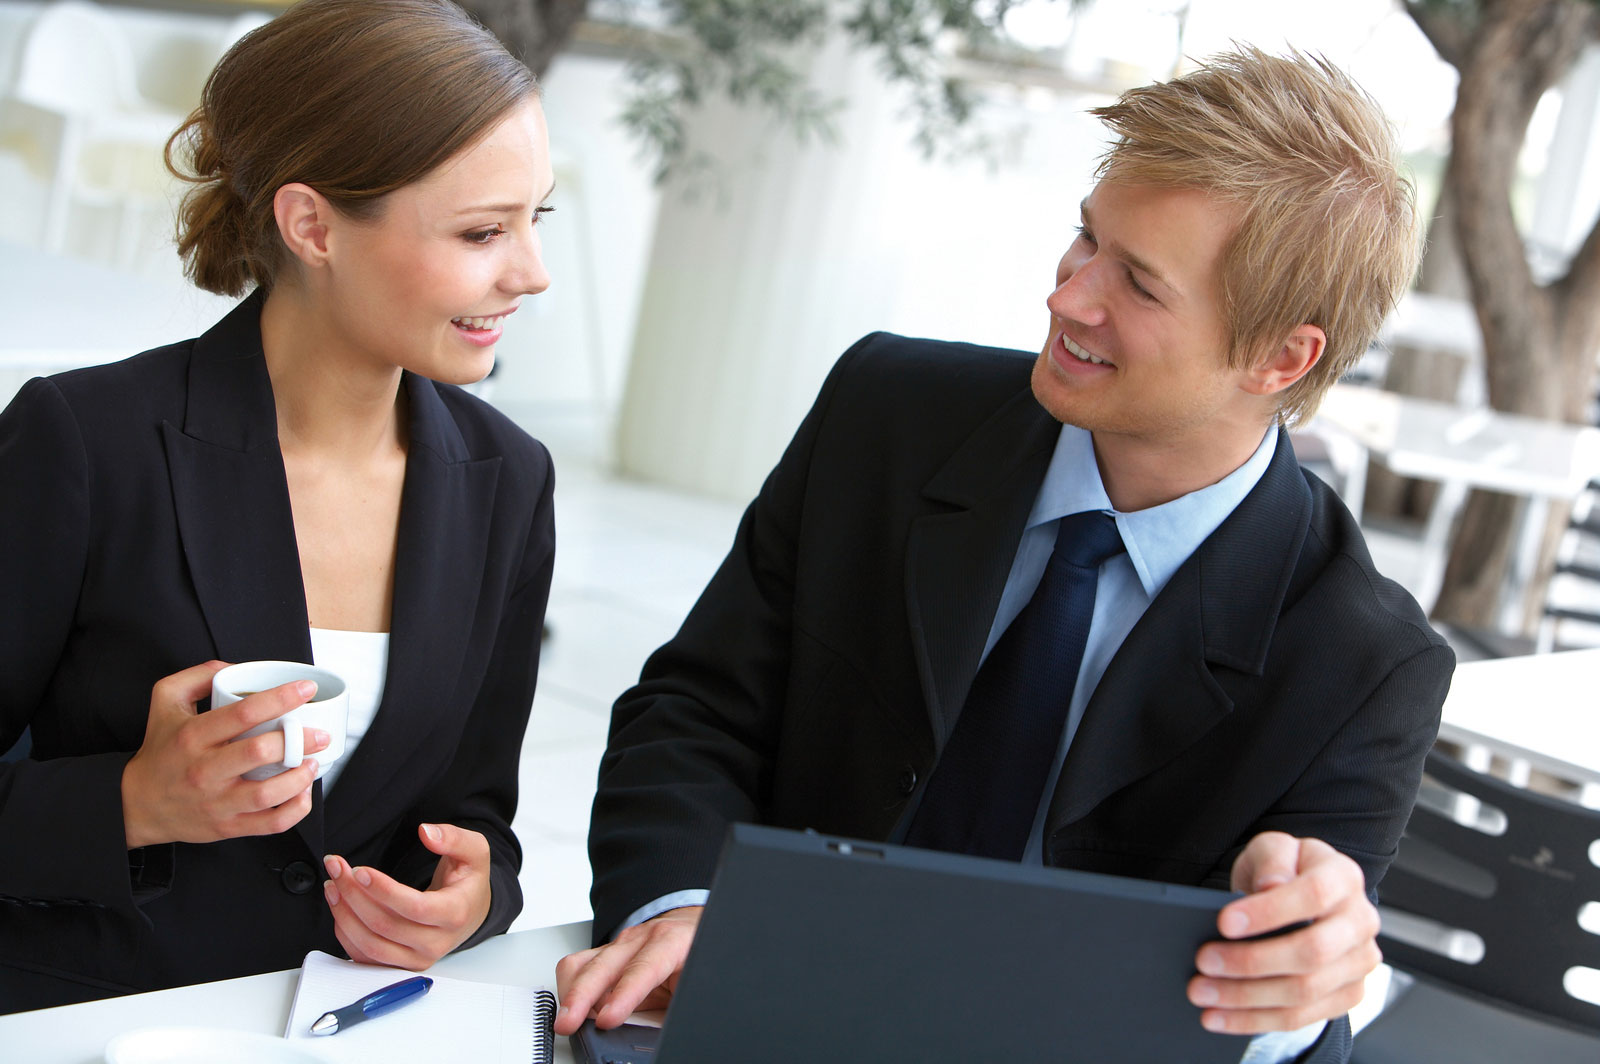 business-people-talking-stock-image